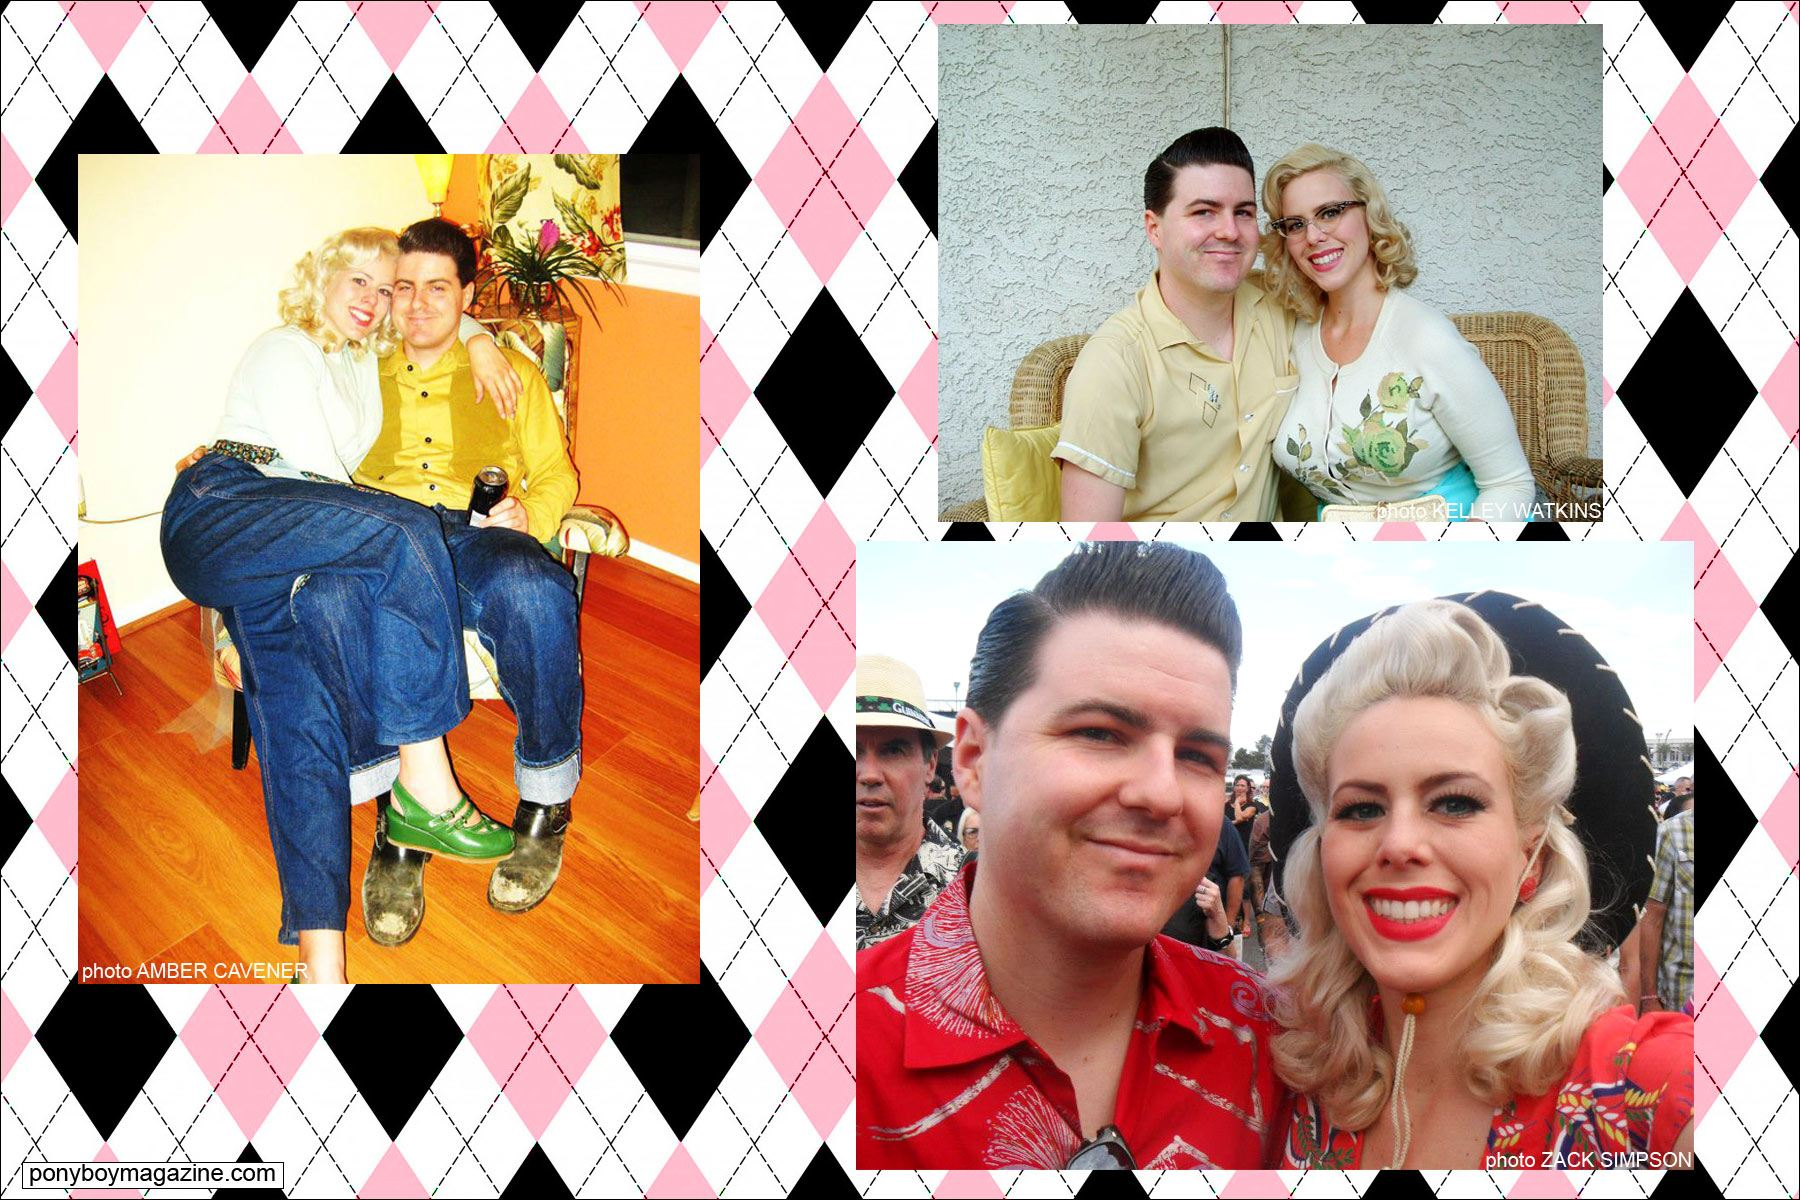 Various photos of Miss Dollie Deville, also known as The Rockabilly Socialite, with husband Zack Simpson. Ponyboy Magazine.